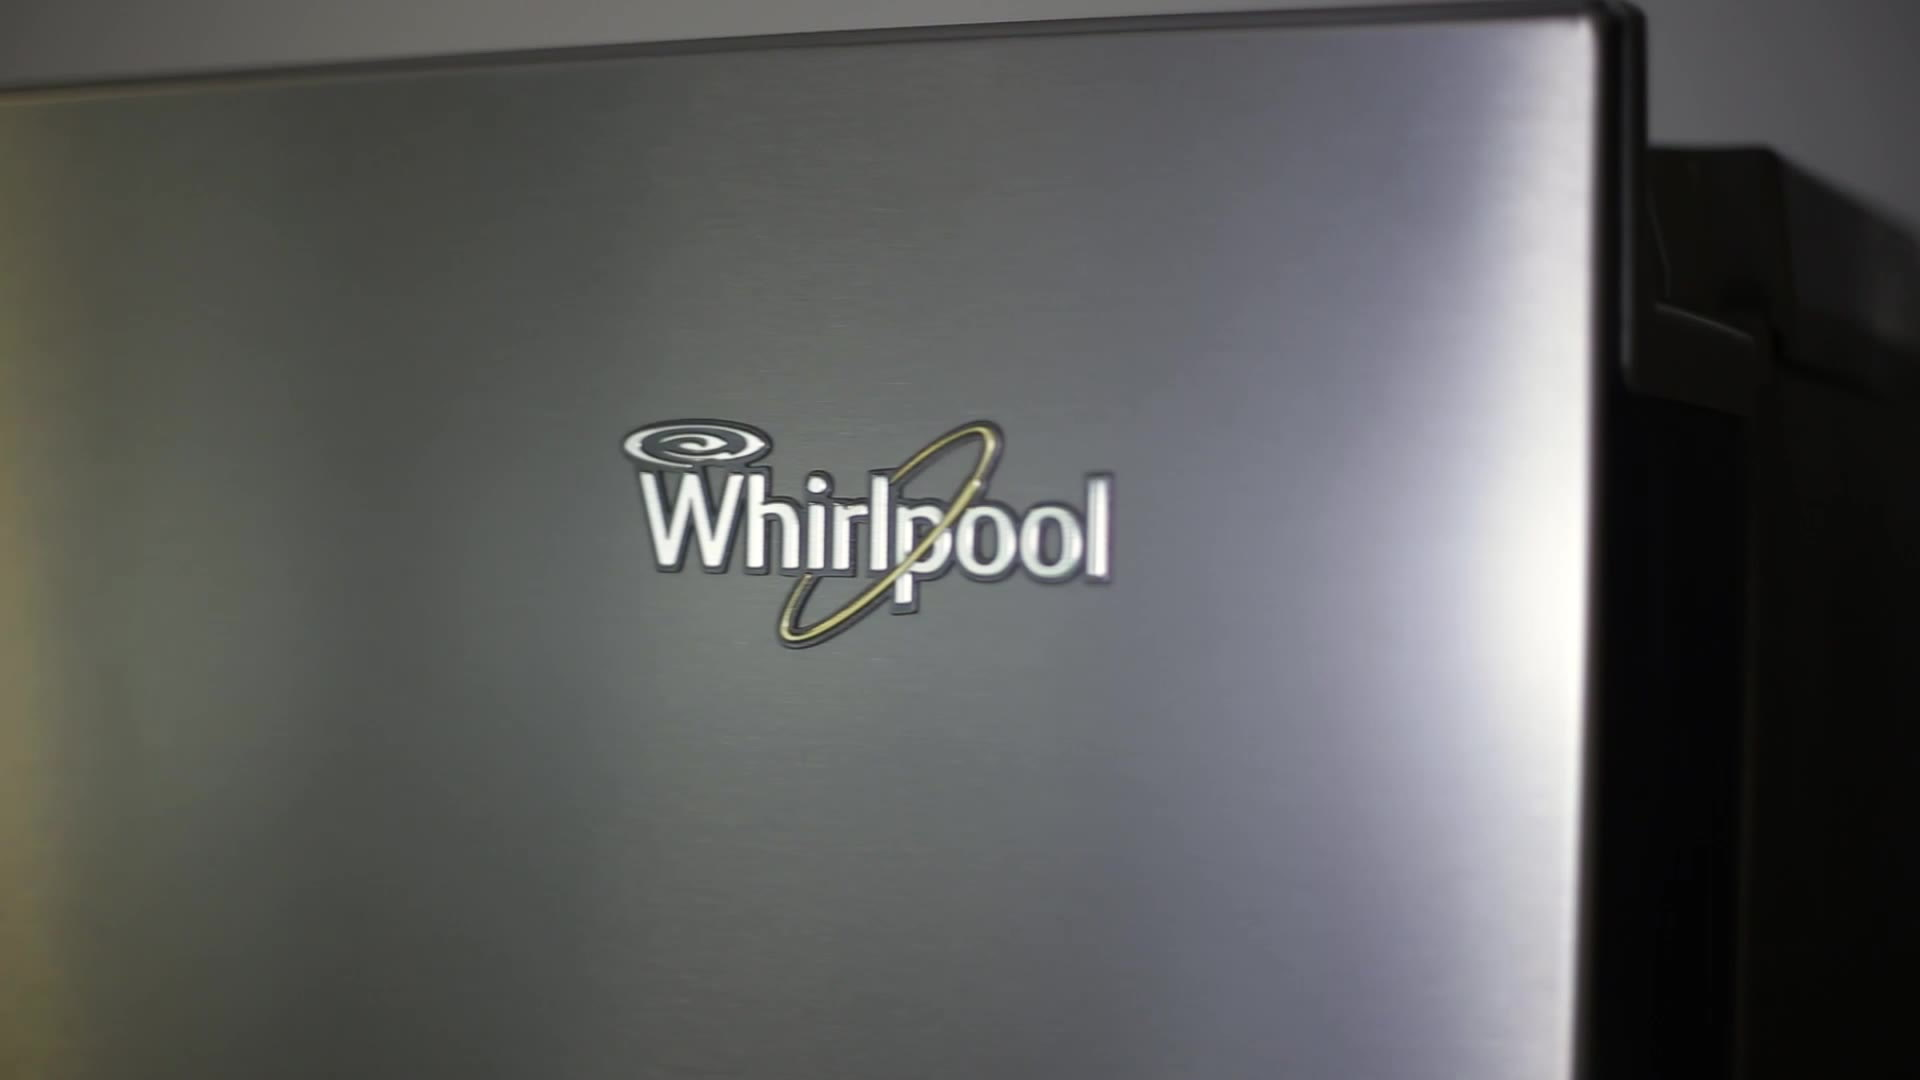 Use your Apple Watch to control select Whirlpool appliances